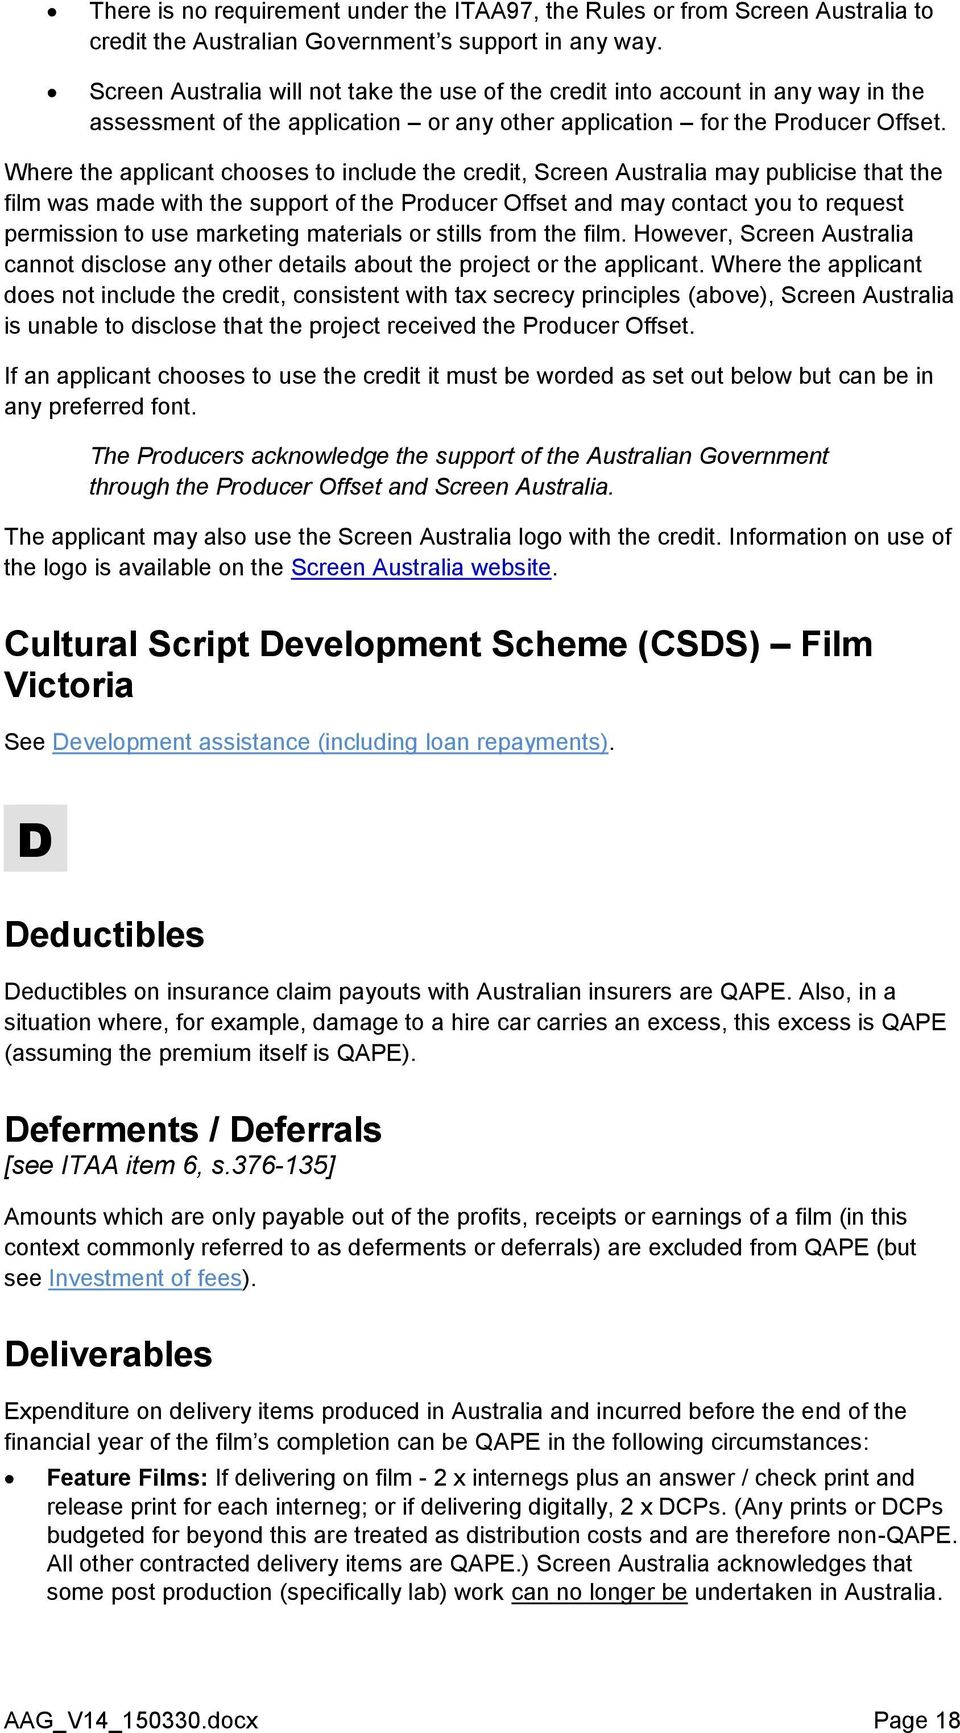 Where the applicant chooses to include the credit, Screen Australia may publicise that the film was made with the support of the Producer Offset and may contact you to request permission to use